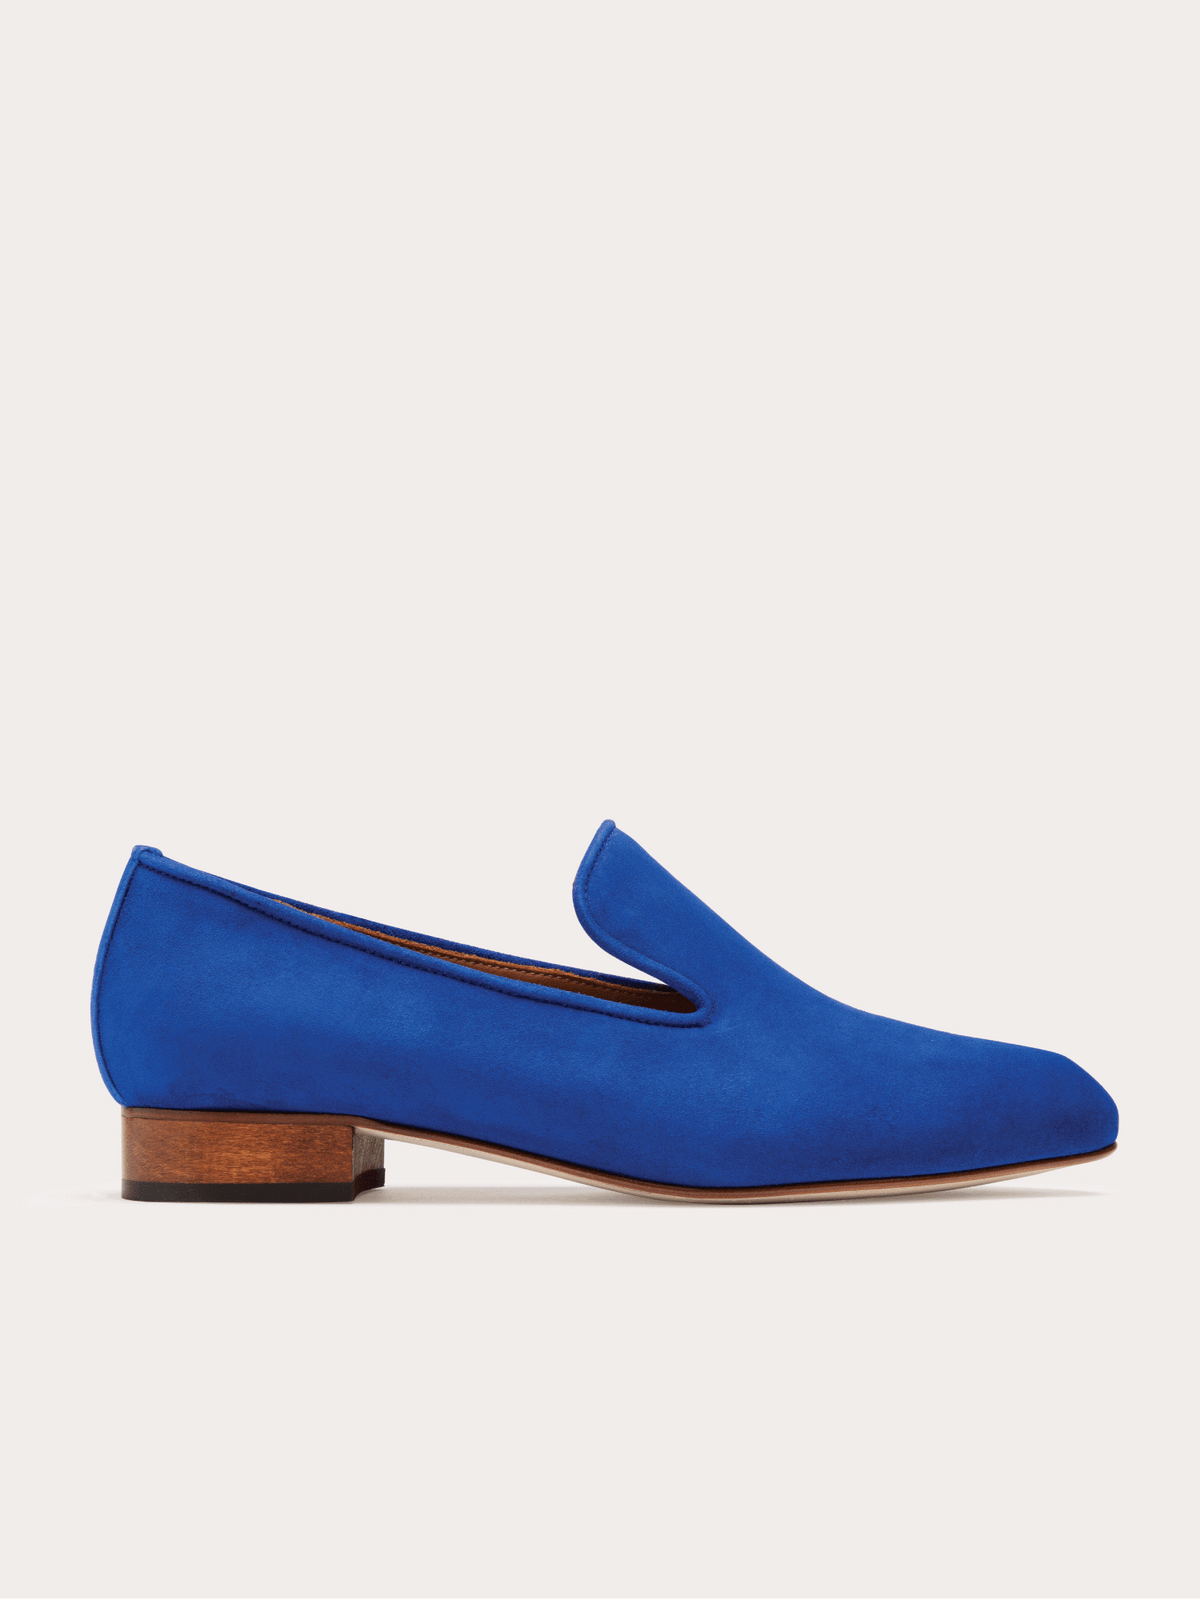 The Town Slipper in Lapis